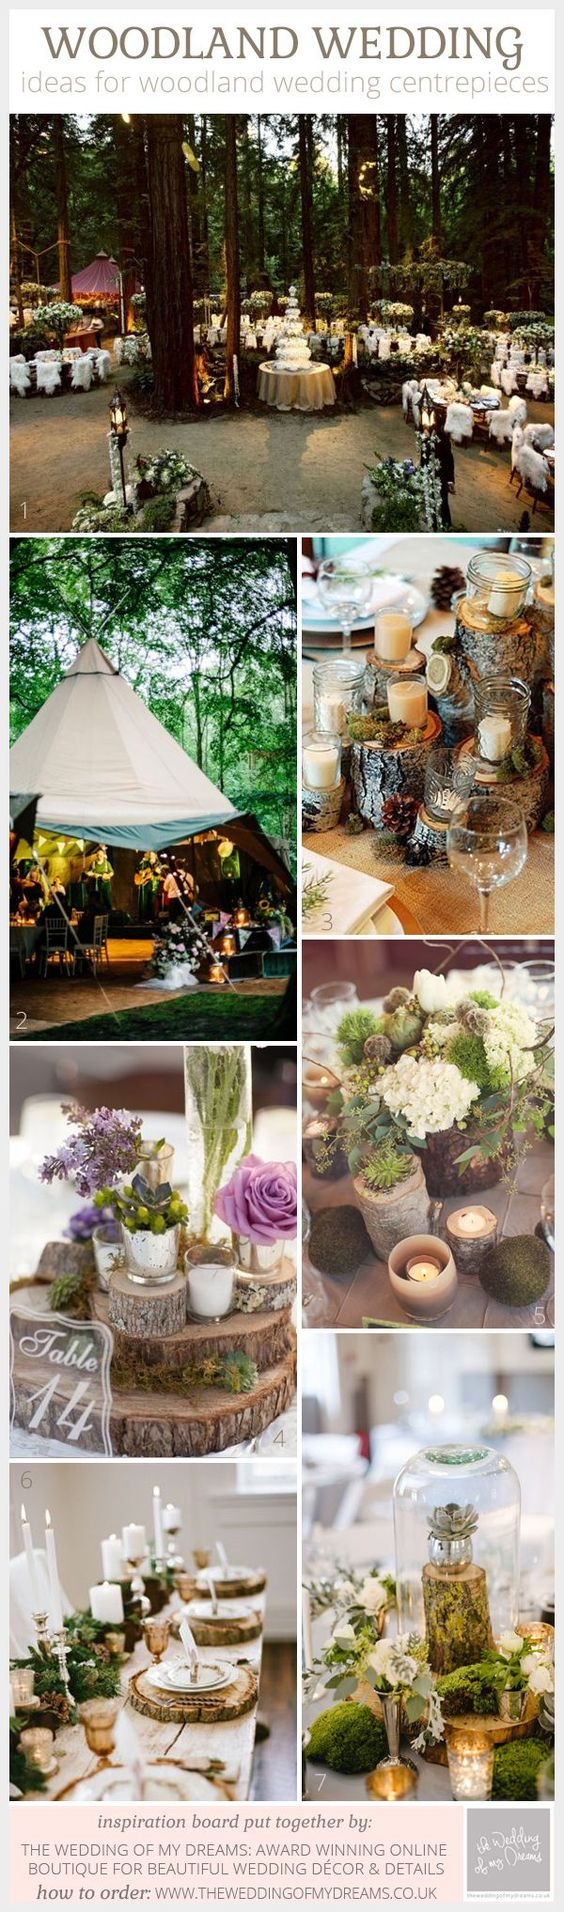 Discover These Amazing Woodland Wedding Centrepiece Ideas: Ideas for woodland wedding centrepieces